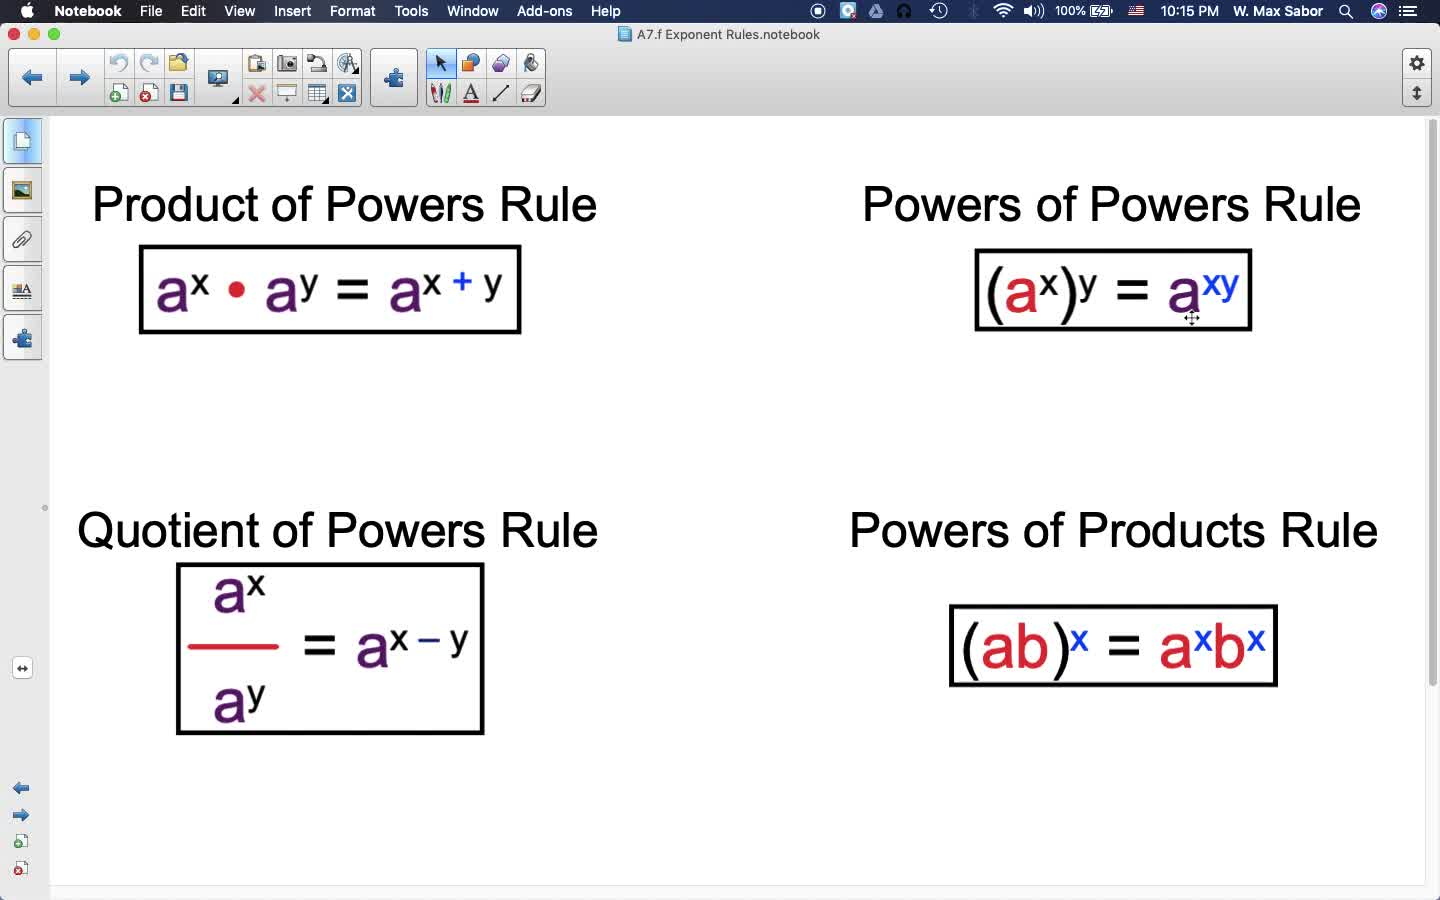 A7.f Exponent Rules